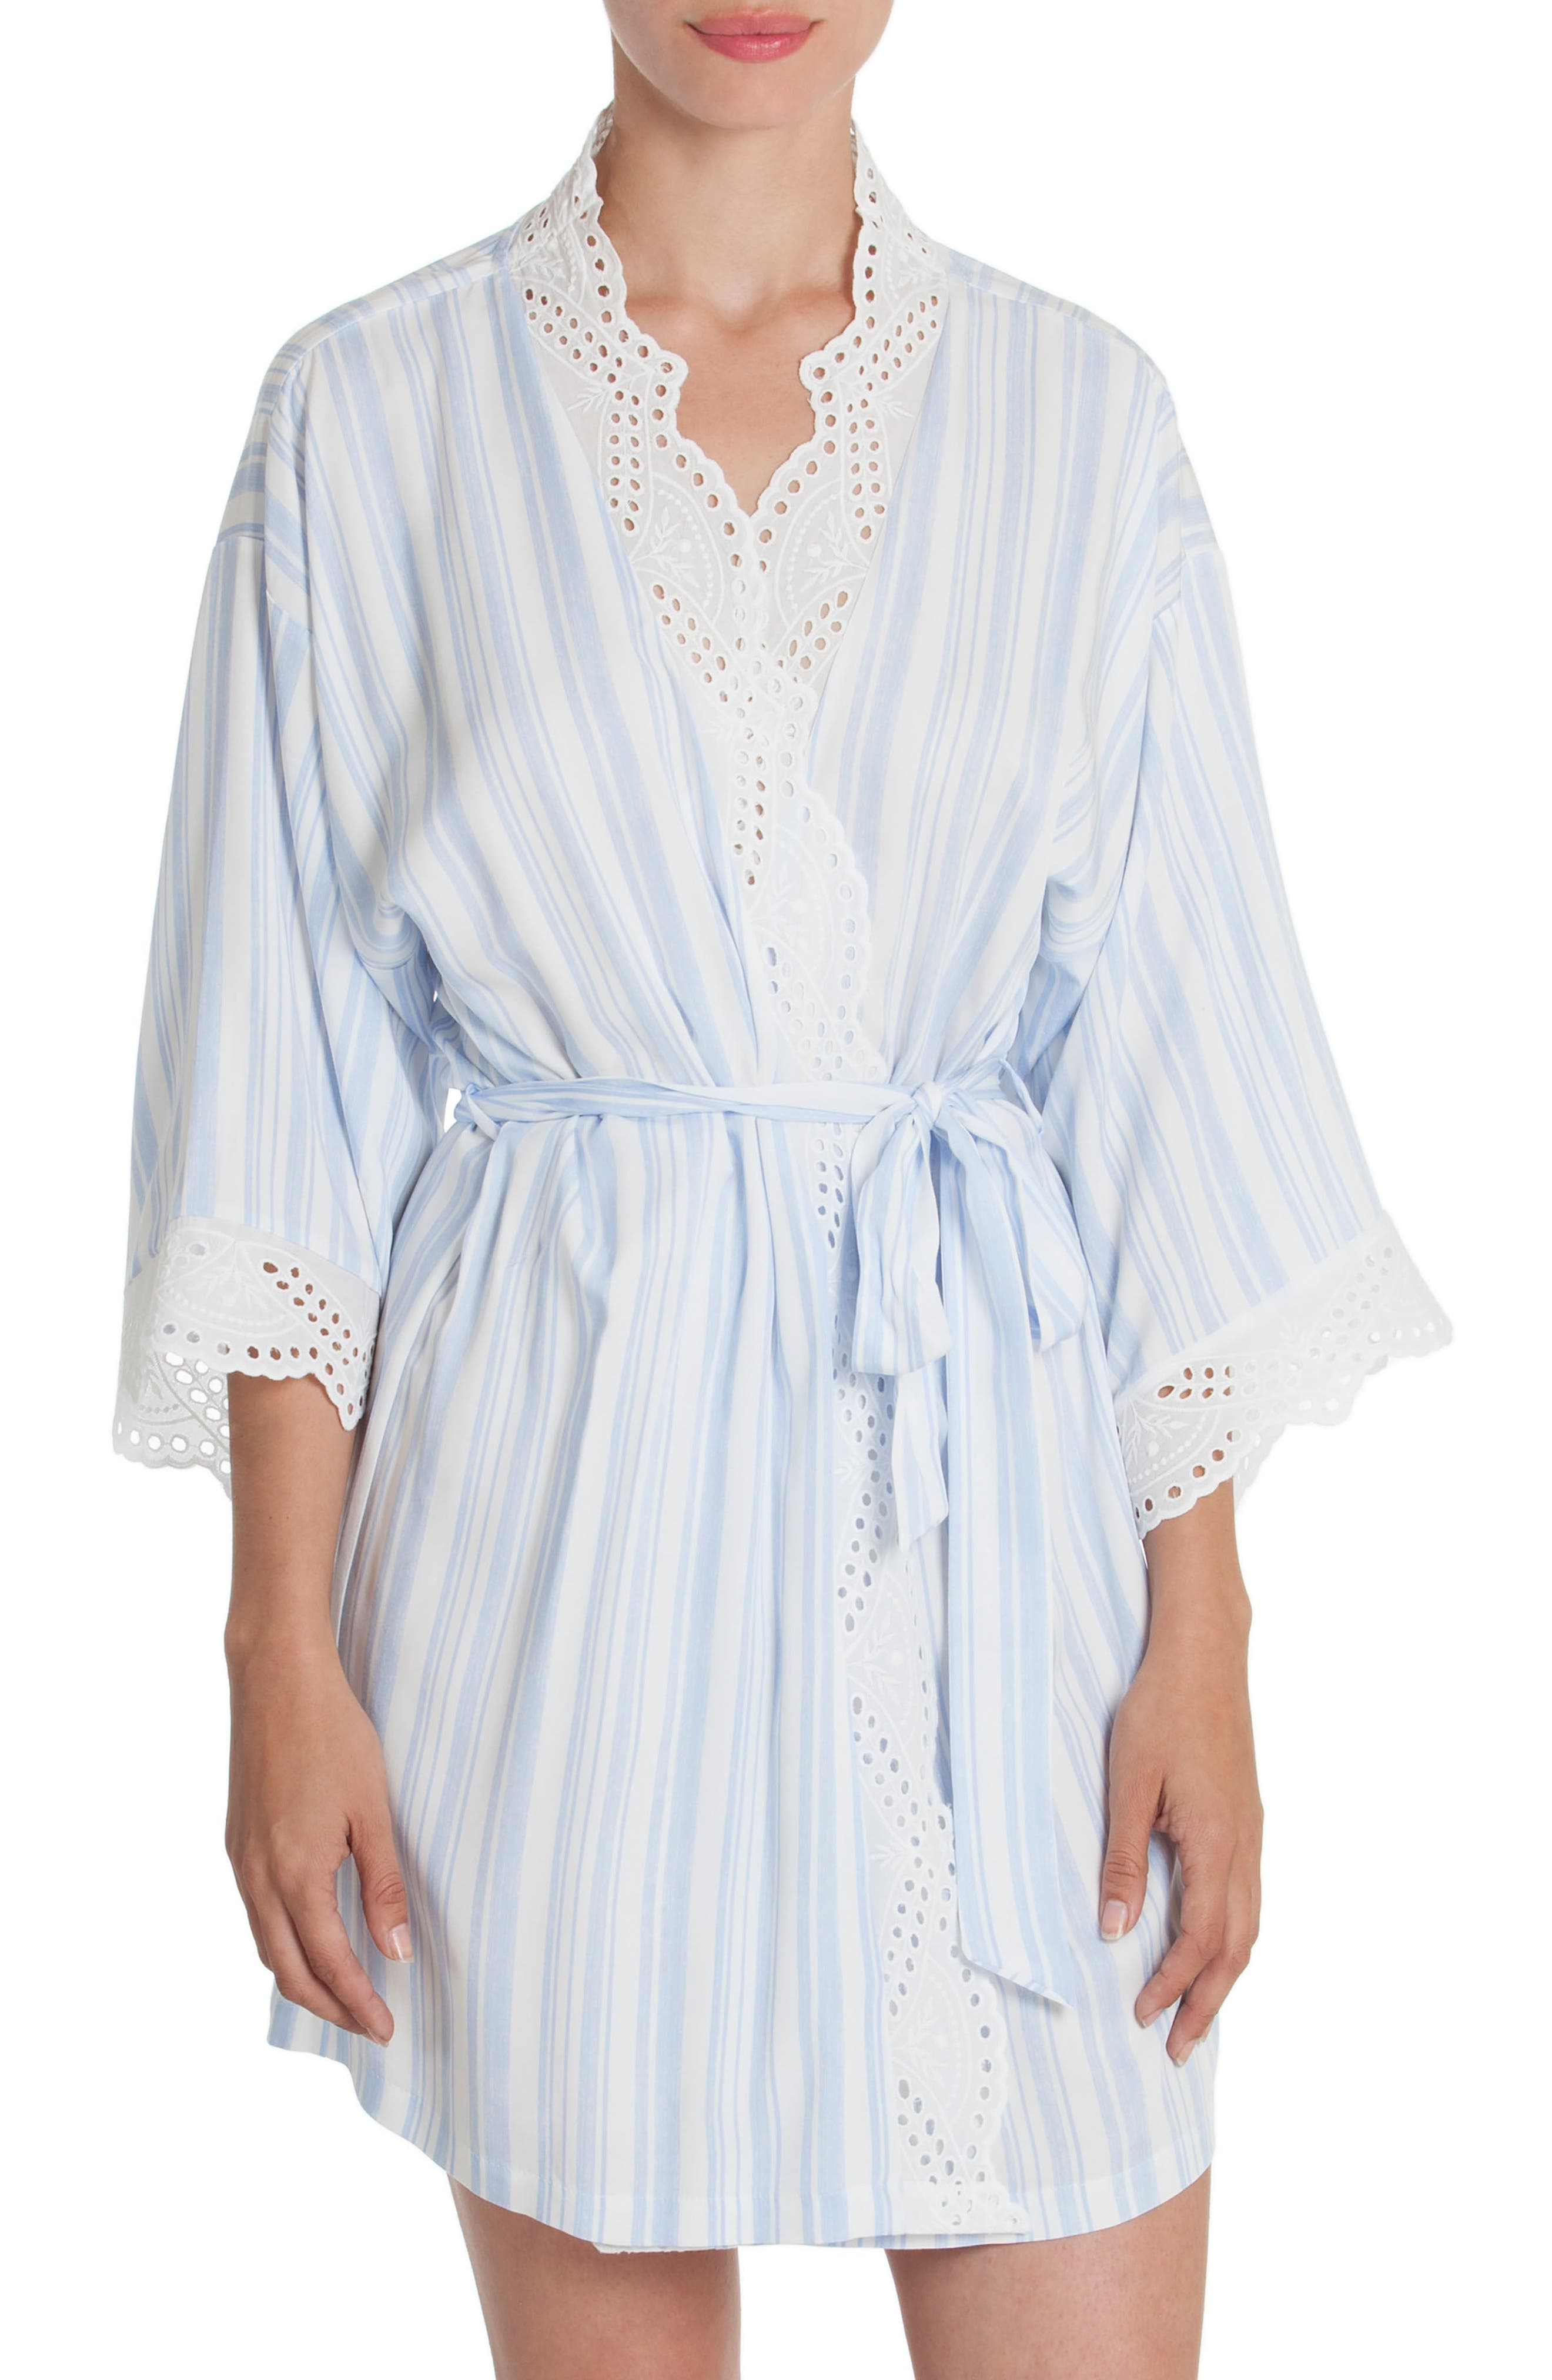 IN BLOOM BY JONQUIL Chambray Wrap